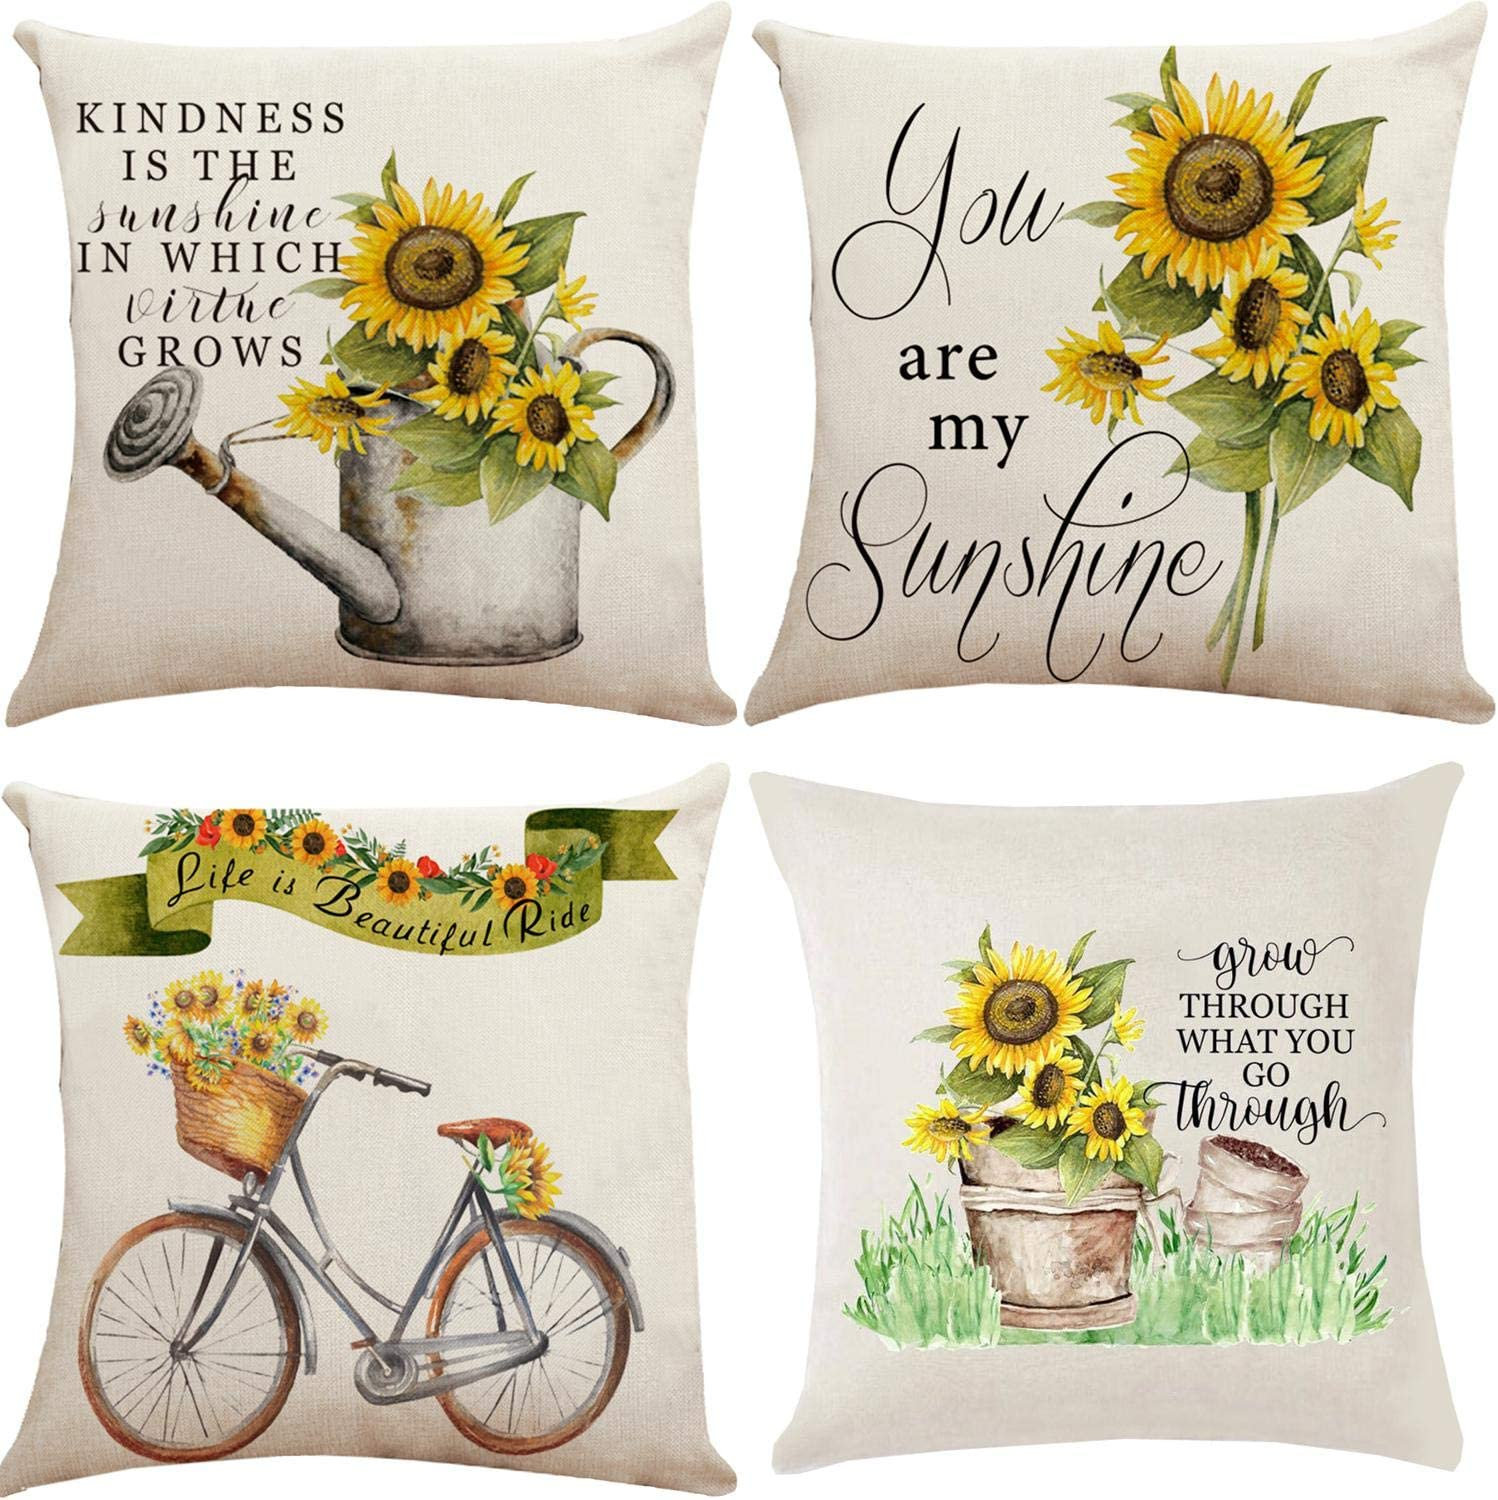 Munzong You are My Sunshine Sunflower Throw Pillow Covers 18 x 18 Inch, Double Side Print Summer Pillowcases, Farmhouse Country Chic Square Seasonal Cushion Covers for Home Bedroom Sofa Chair Decor